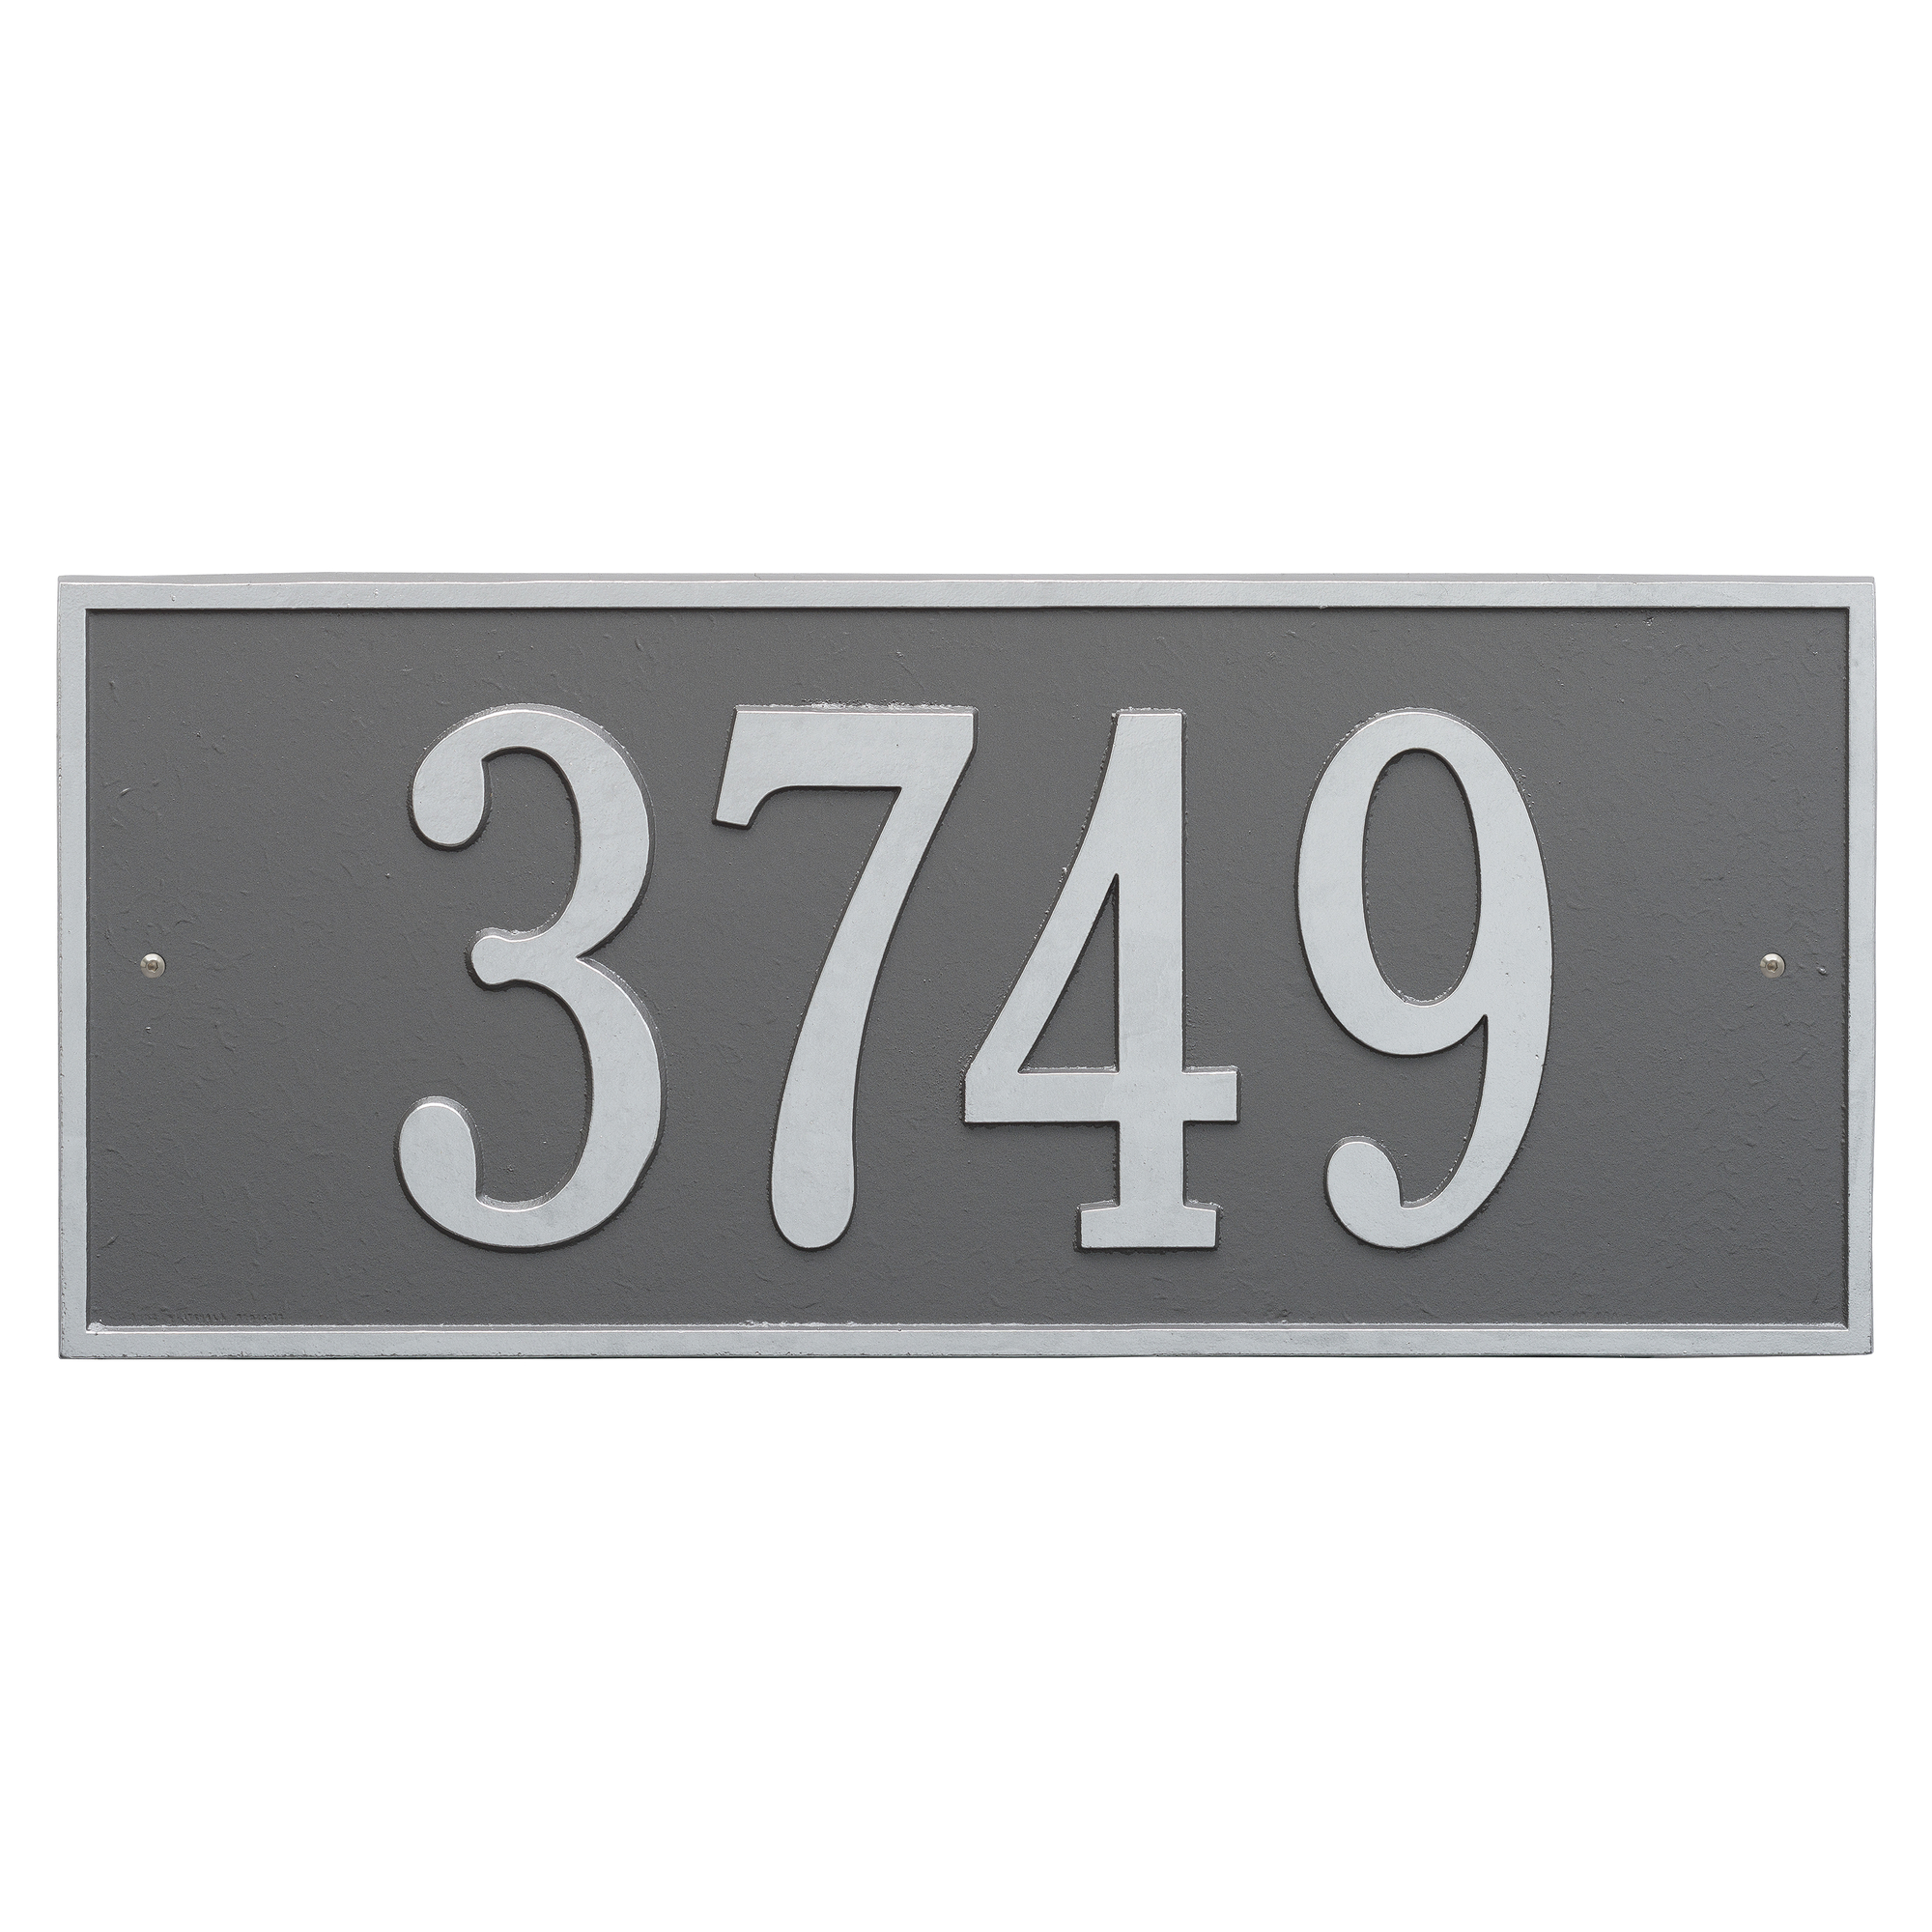 Personalized Hartford Rectangular Estate Wall 1-Line Address Plaque in Pewter Silver by Whitehall